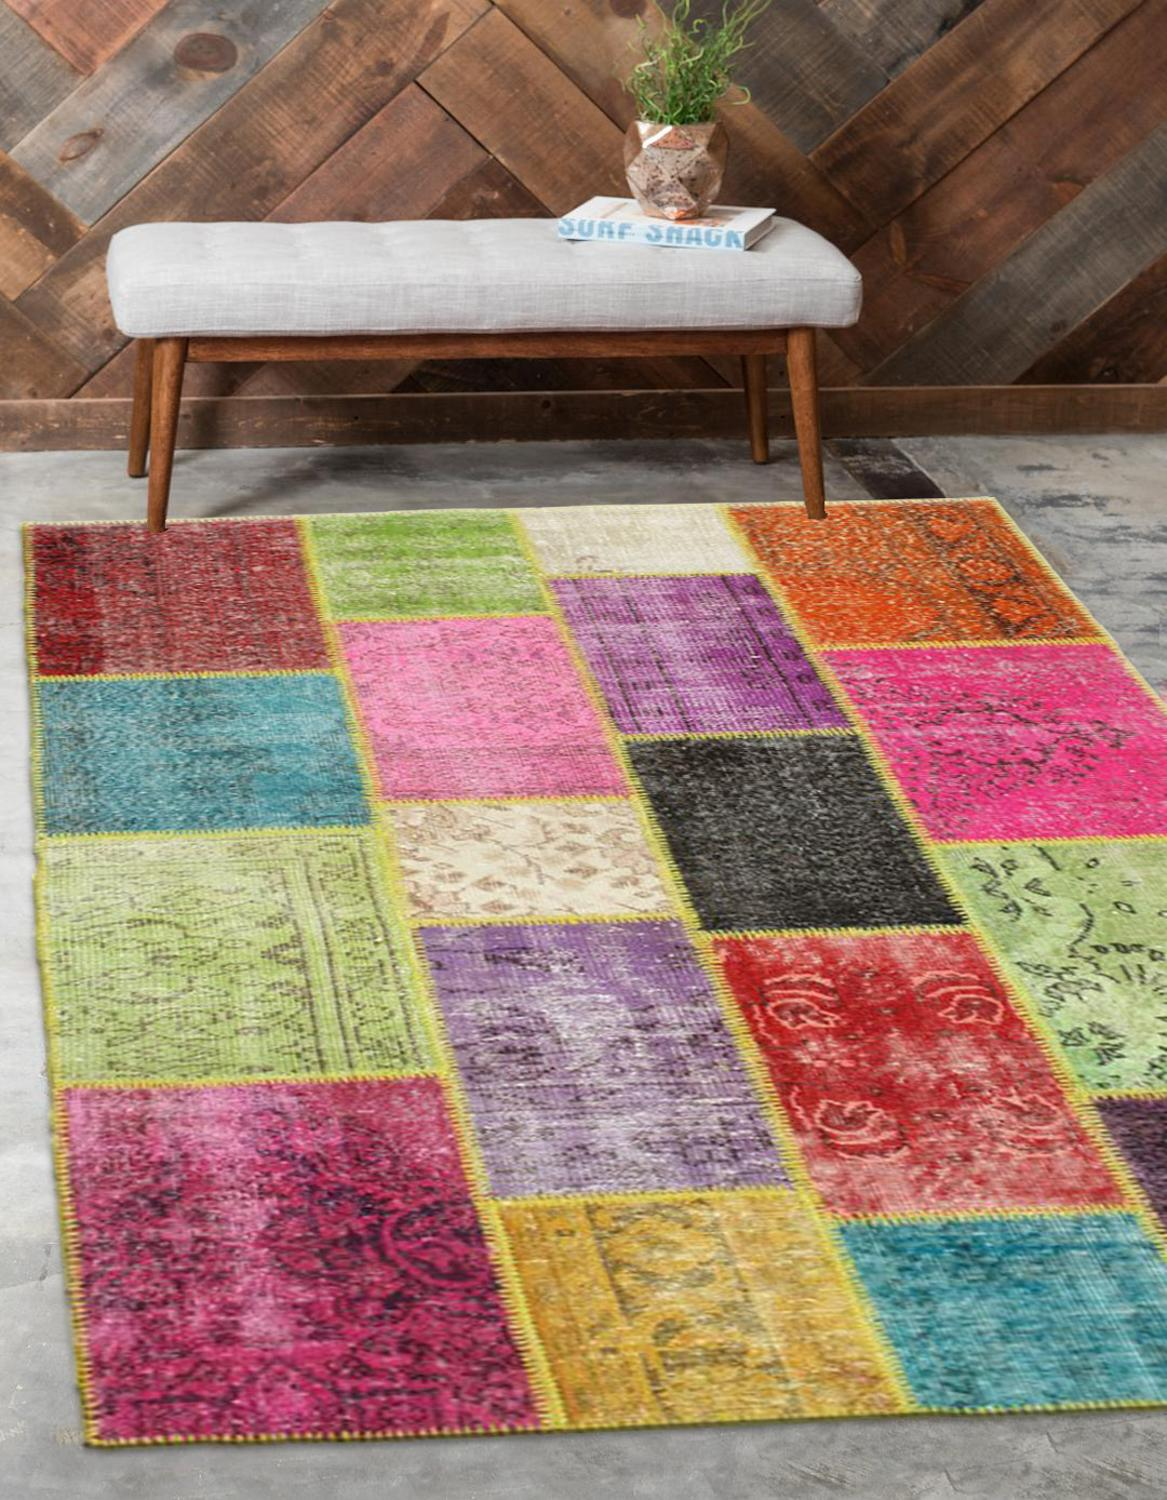 Else Multi Color Anatolian Patchwork Rug Turkish Handmade Organic Area Rug Decorative Home Decor Wool Patchwork Rug Carpet